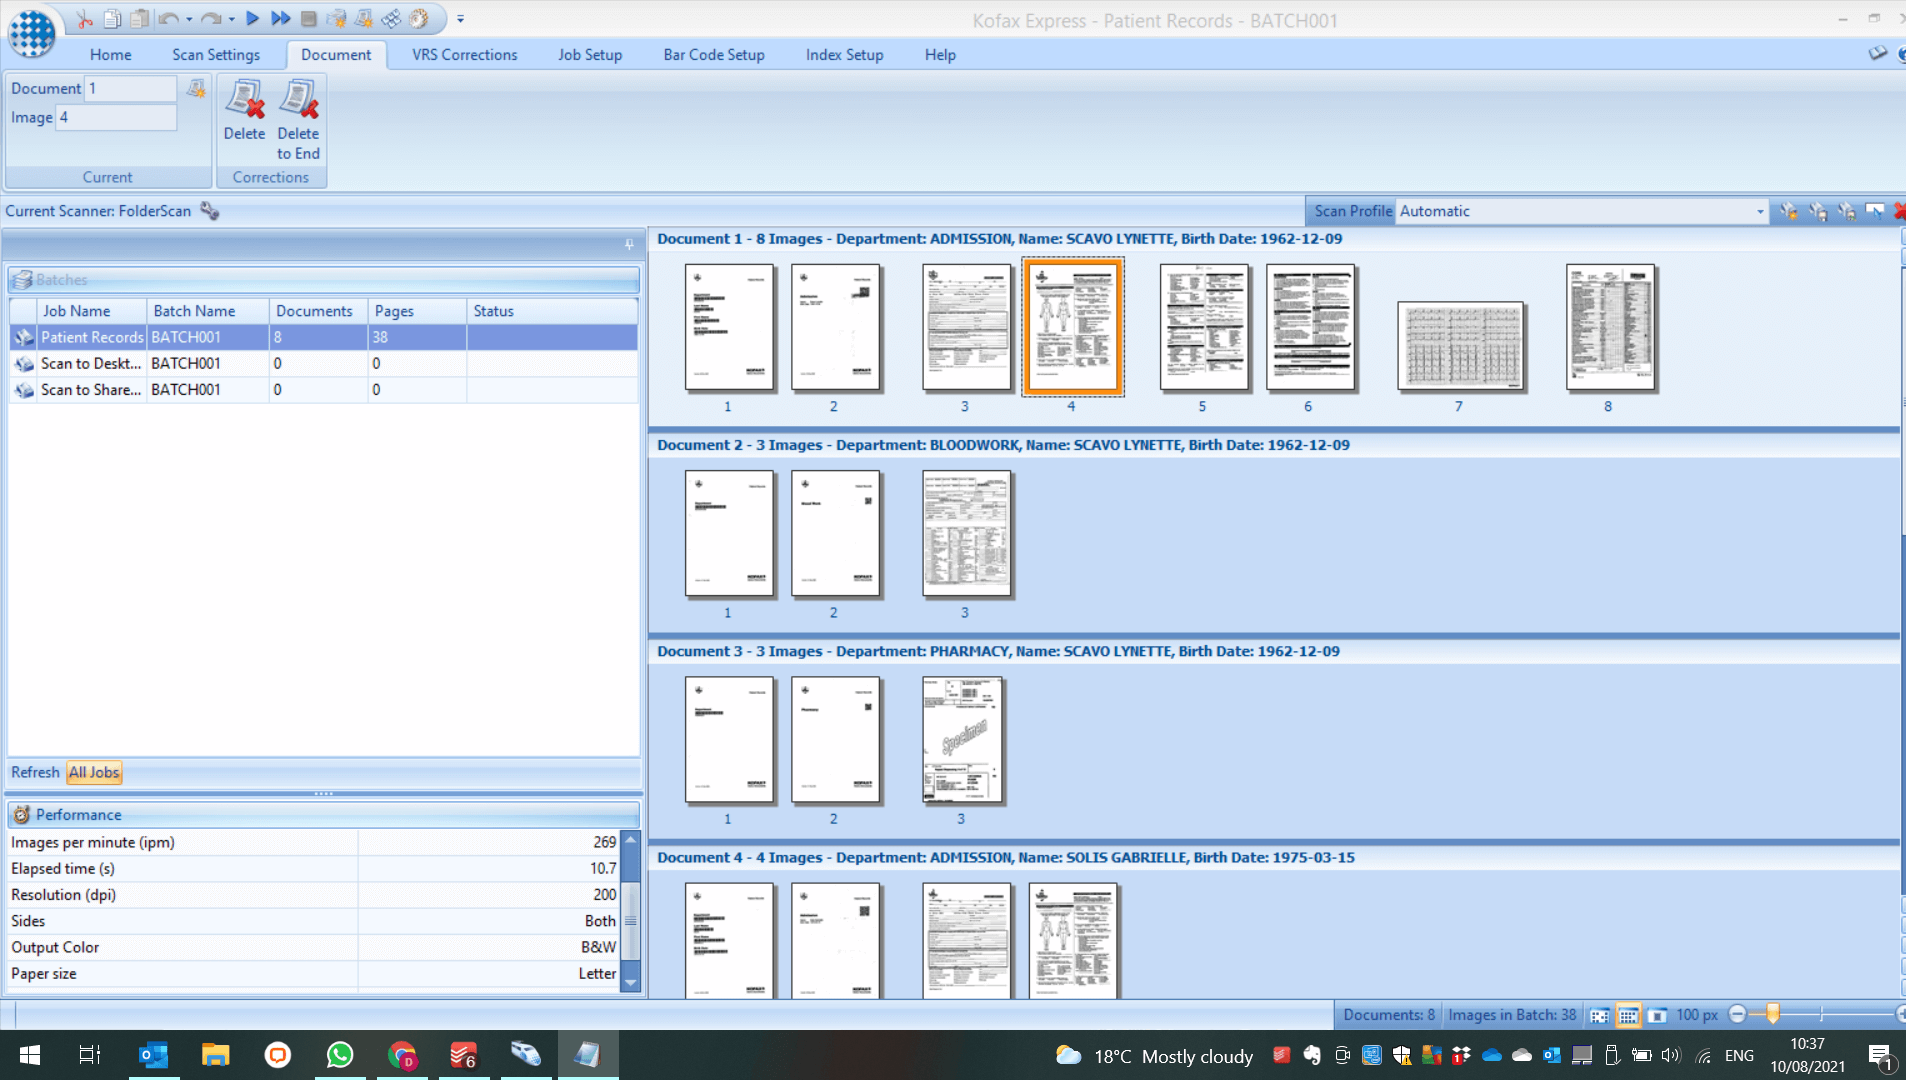 Display of the document settings within Kofax Express dashboard